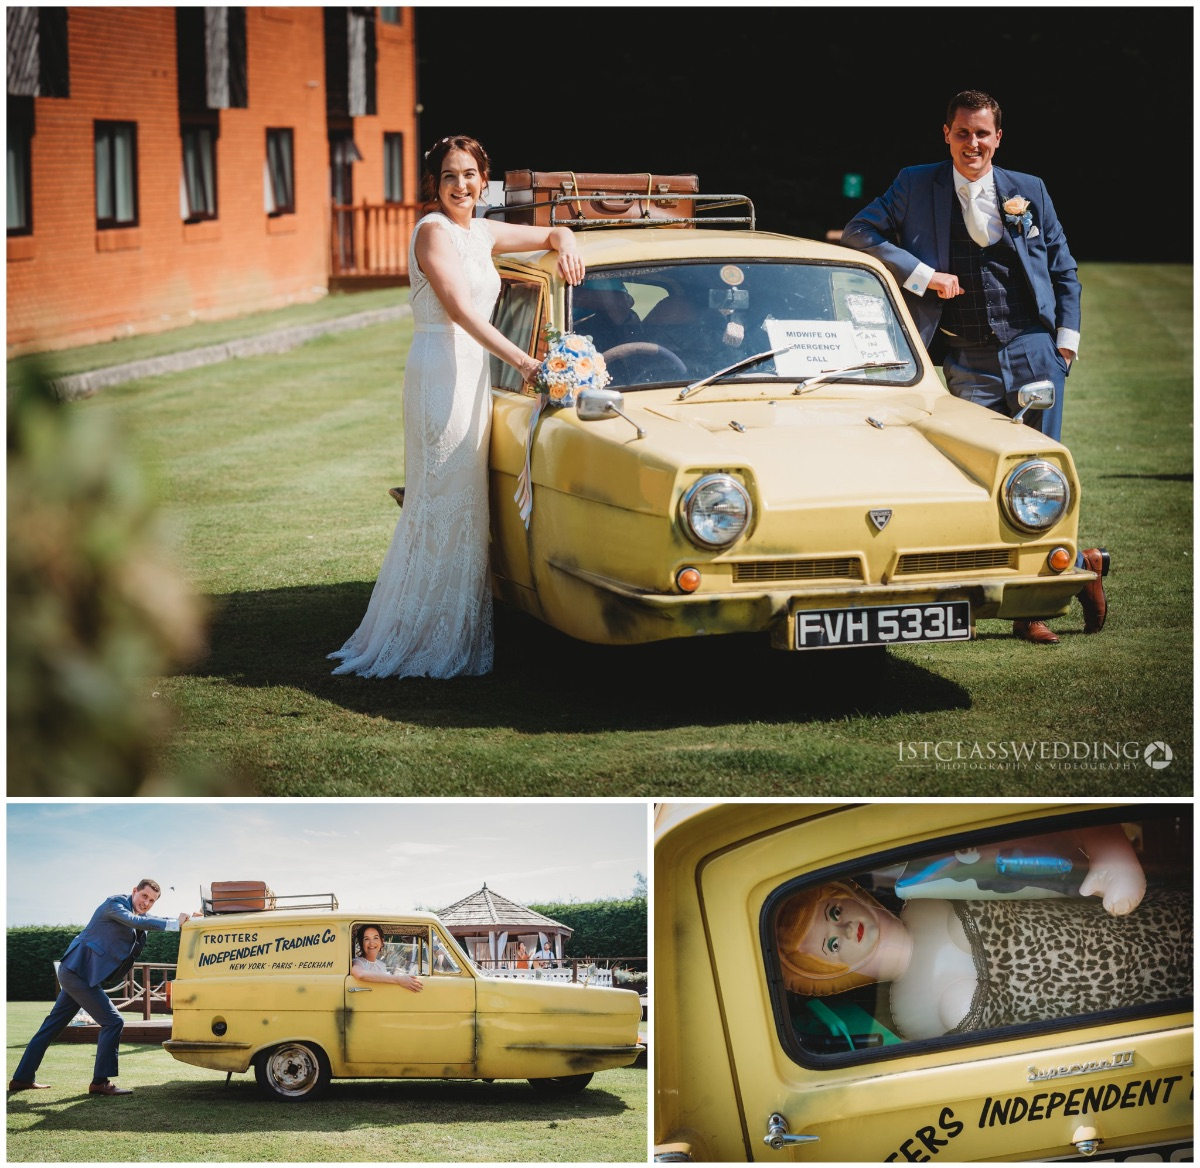 1st Class Wedding Photography-Image-151